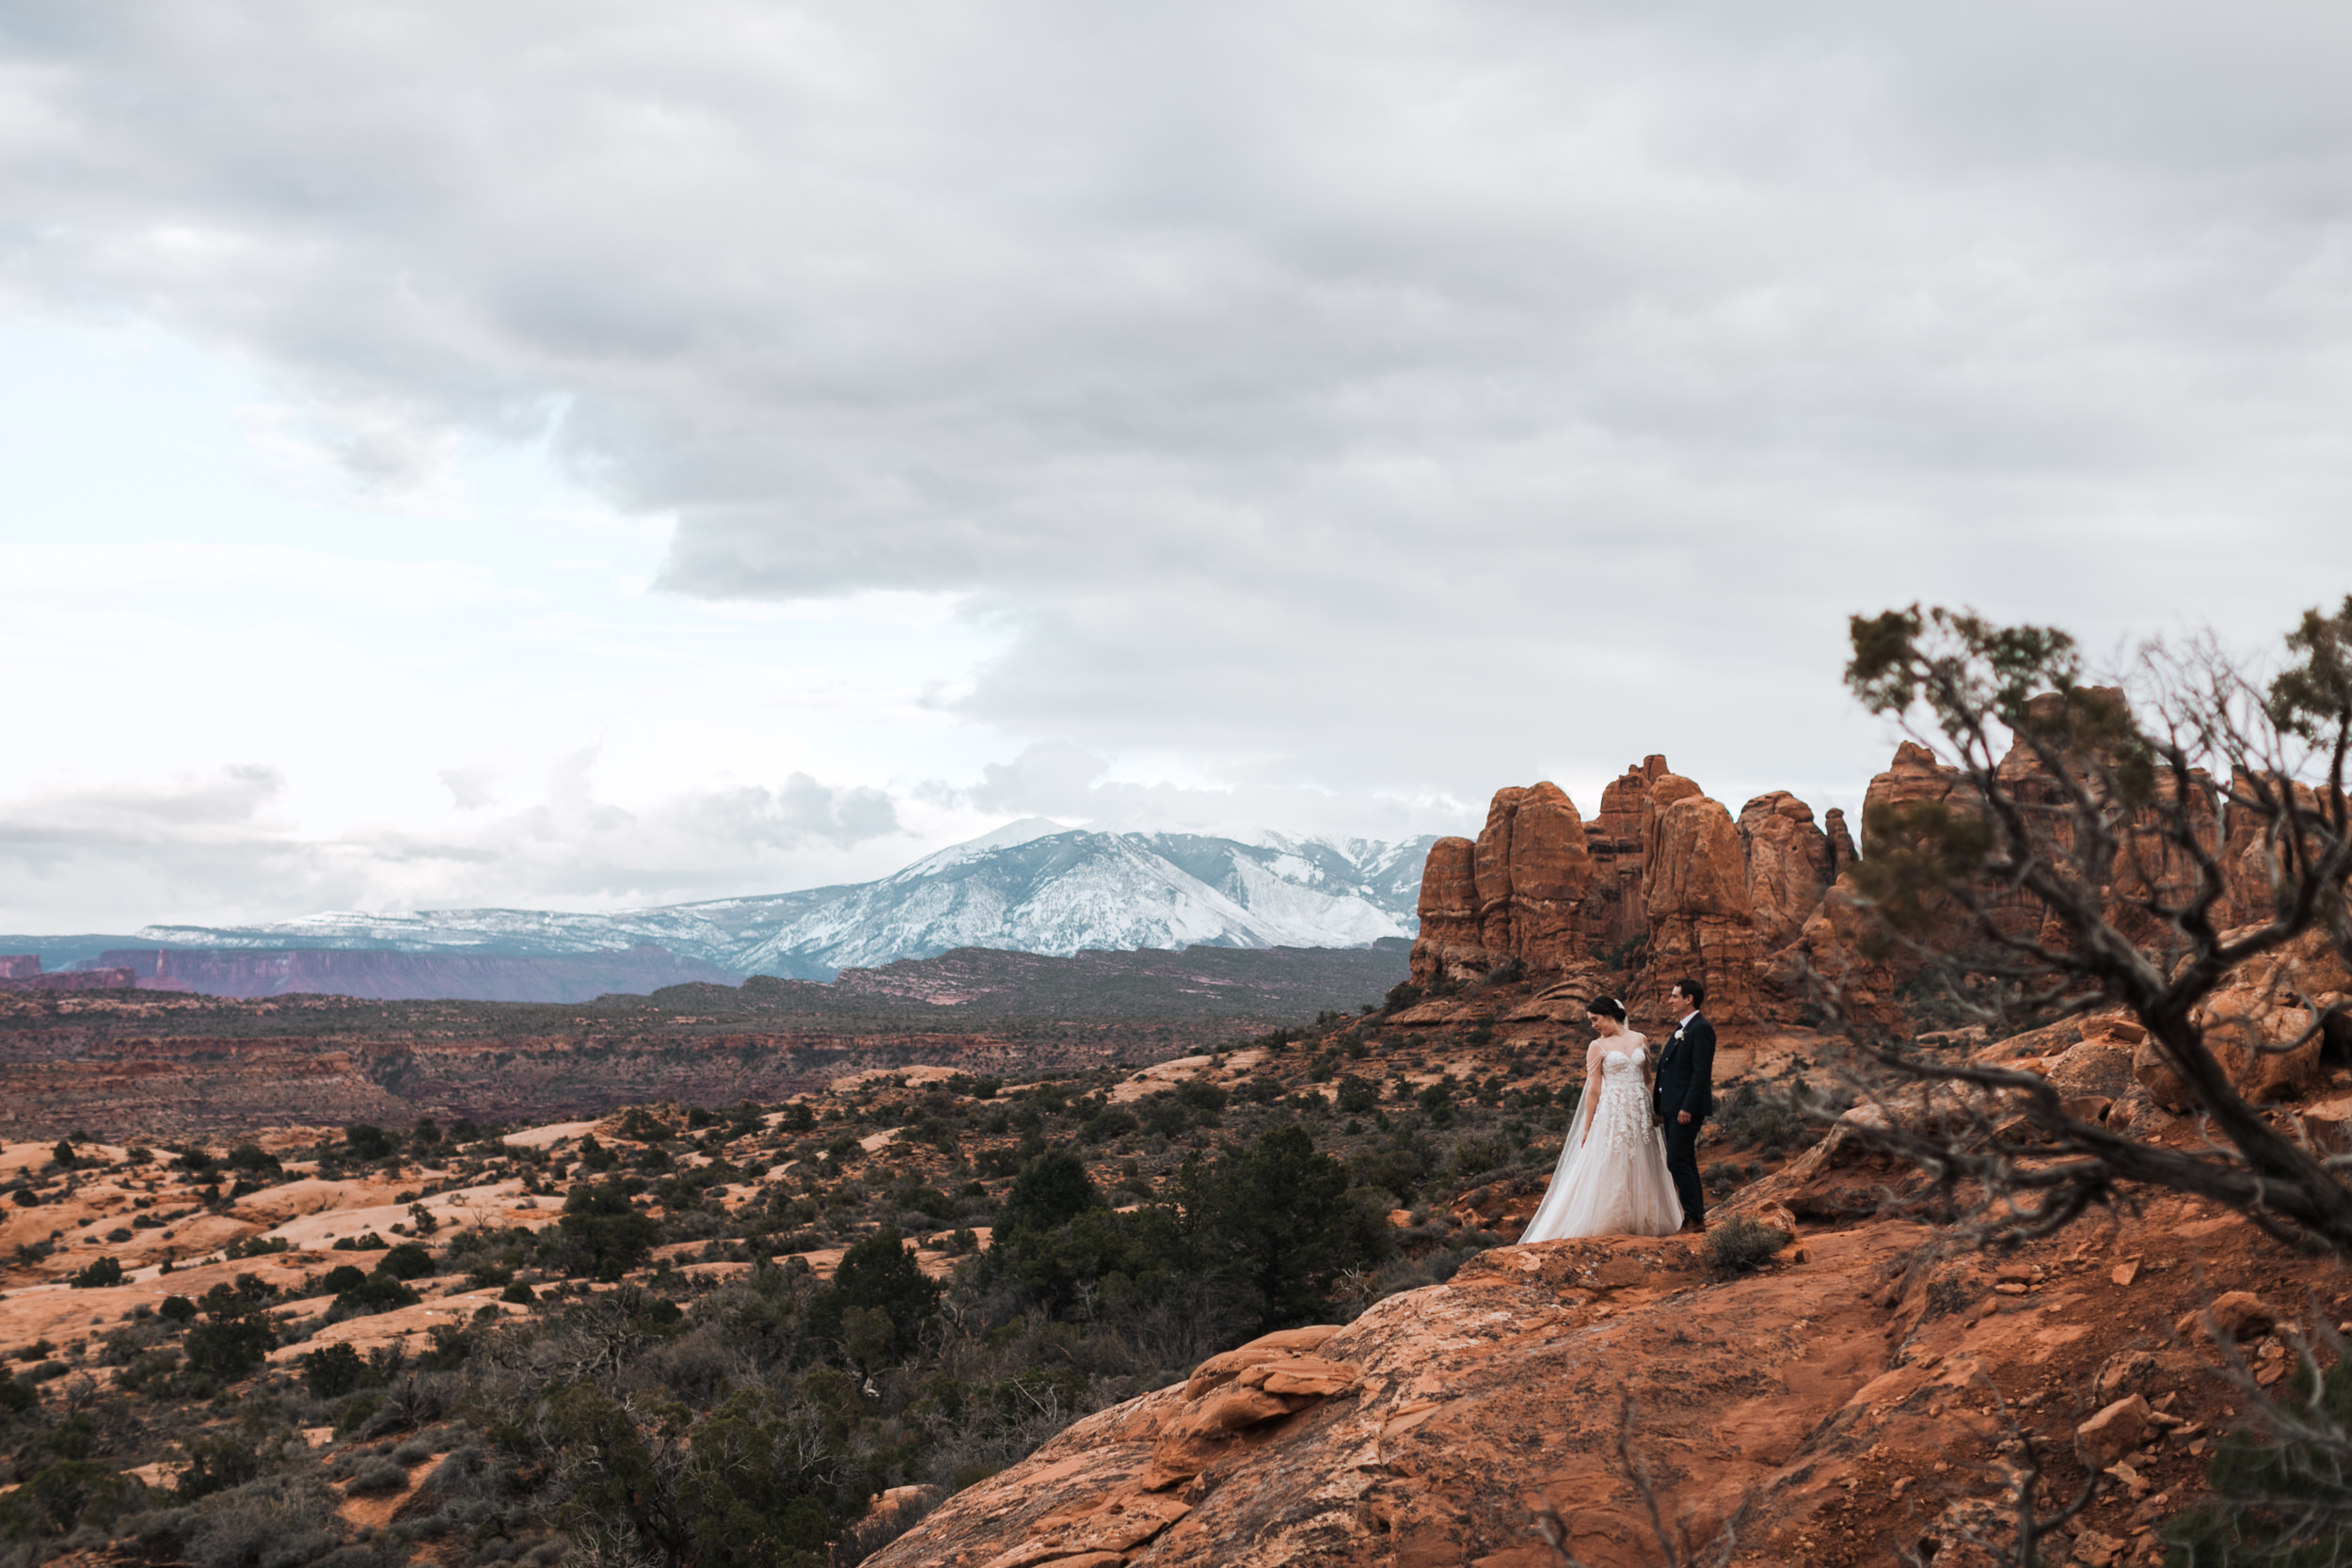 The Lasalle's in the background of Arches National Parks is one of the best desert views for sunrise or sunset in Arches National Park.